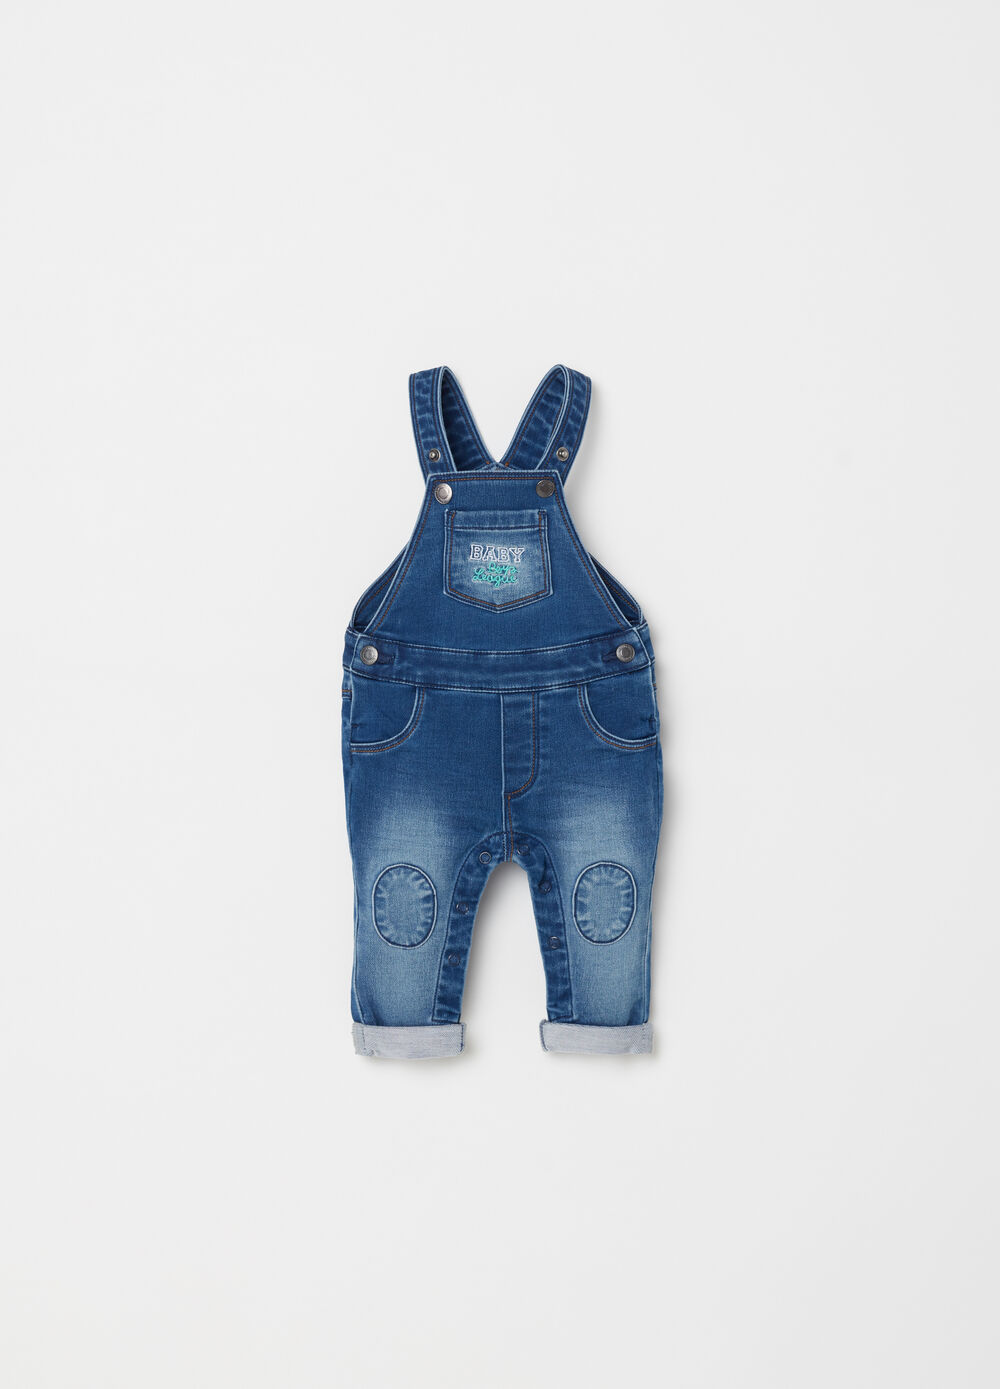 Denim dungarees with pockets and embroidery